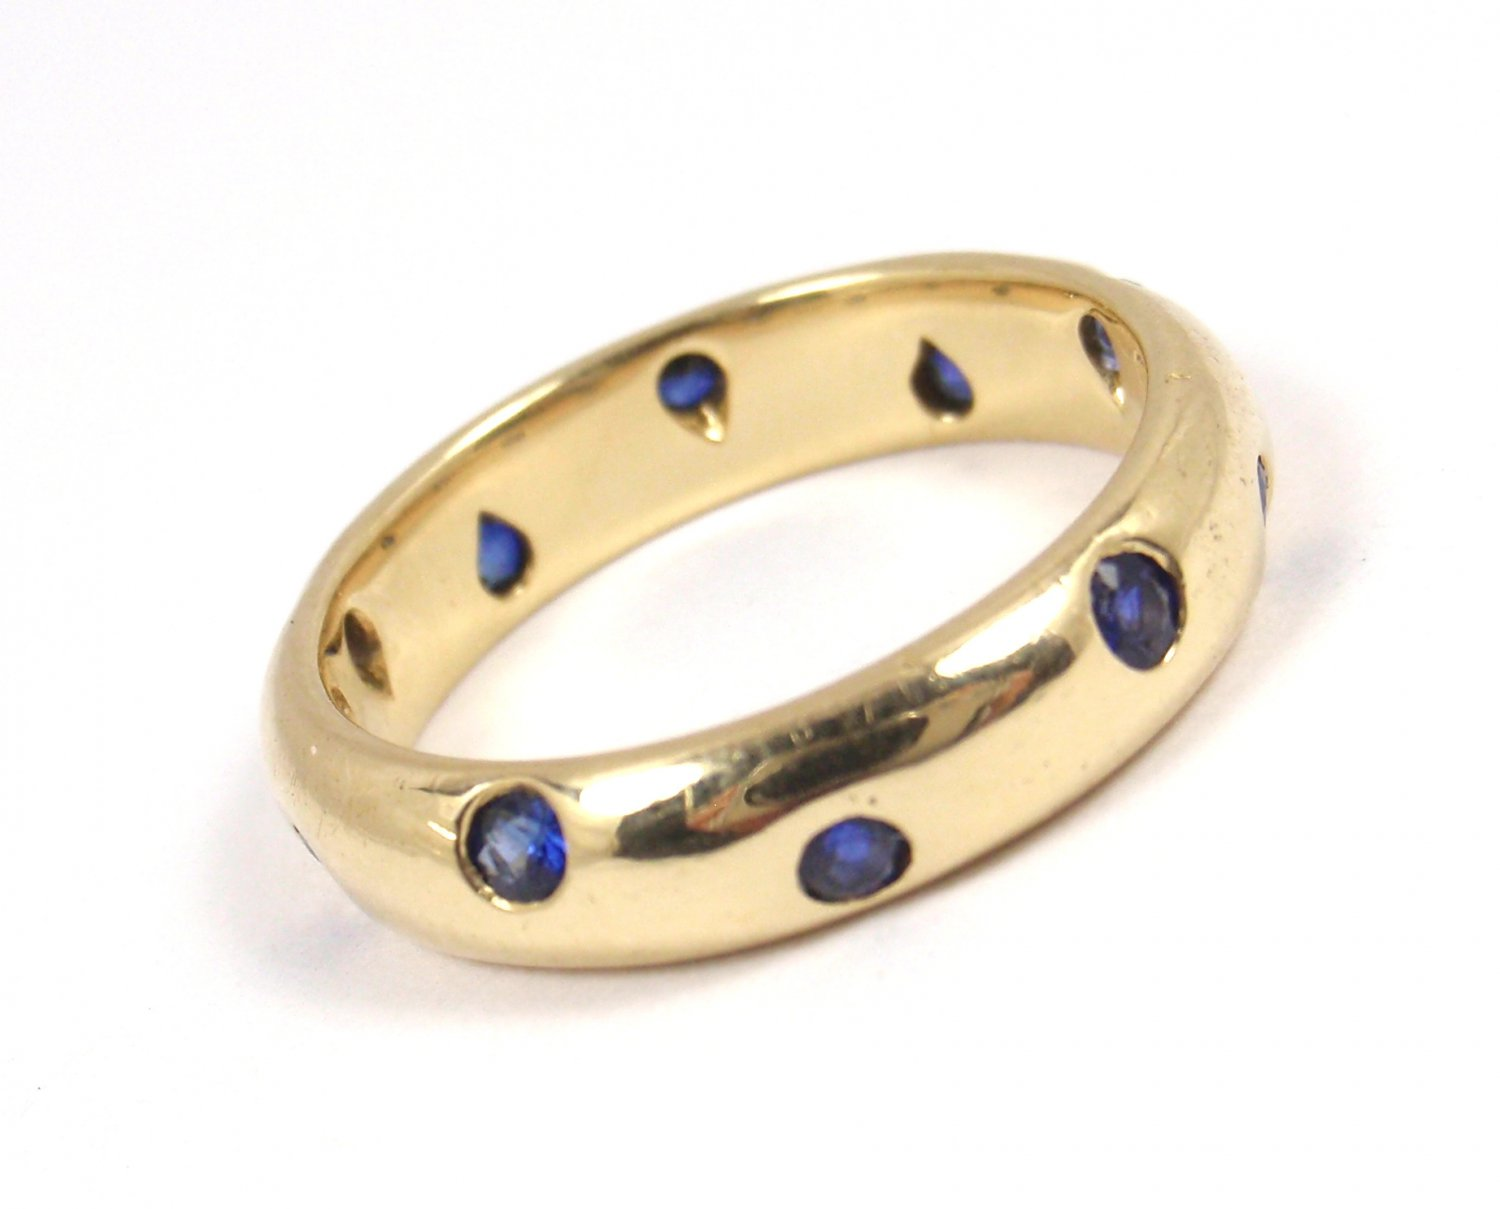 48a4ada8f Rare Vintage Tiffany & Co Etoile 18K Yellow Gold Blue Sapphire Eternity  Band Ring Size 5-3/4